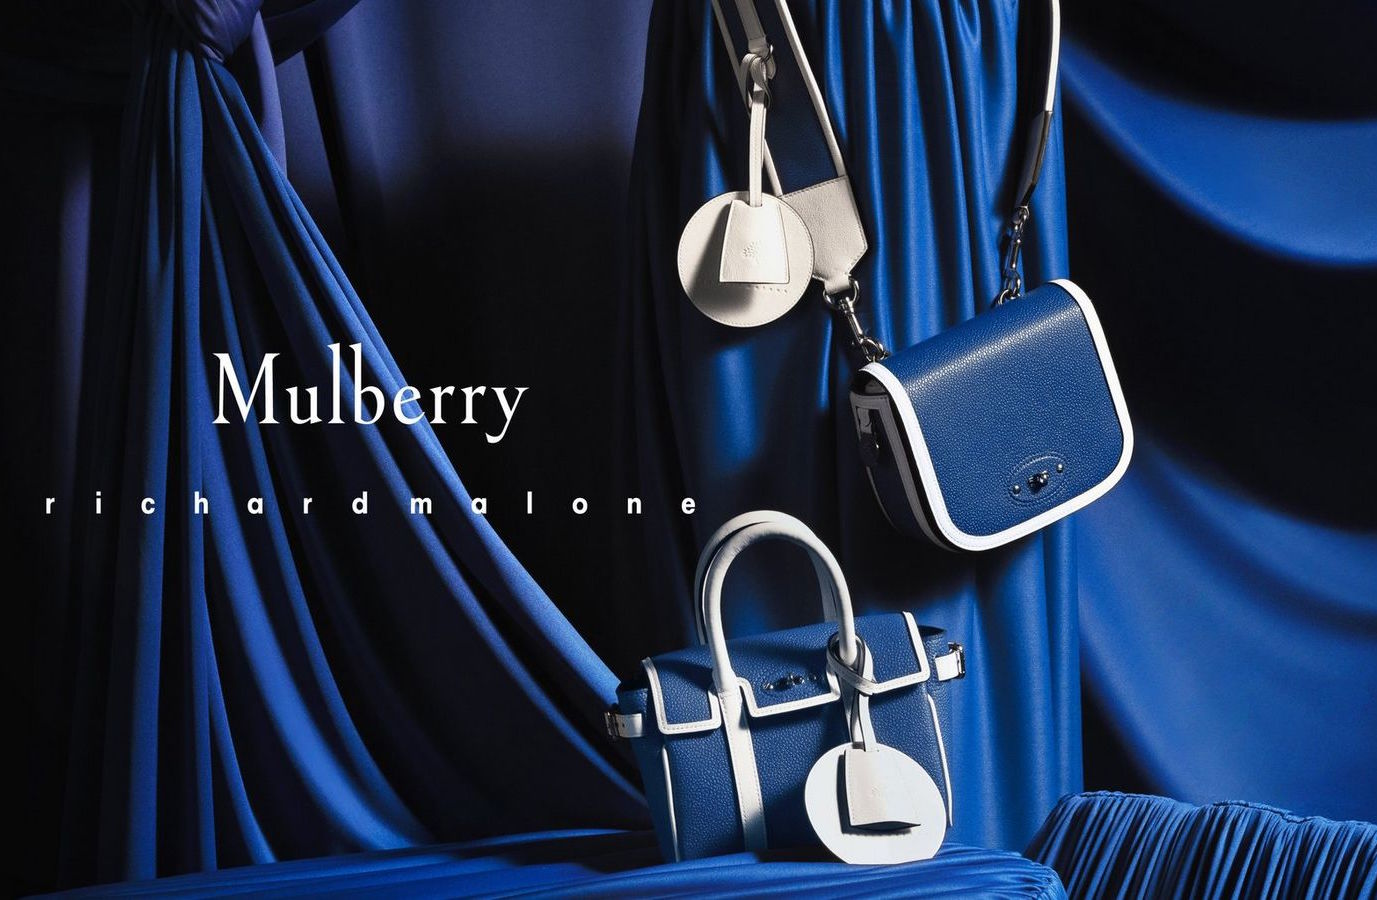 Mulberry x Richard Malone Bags review bayswater satchel